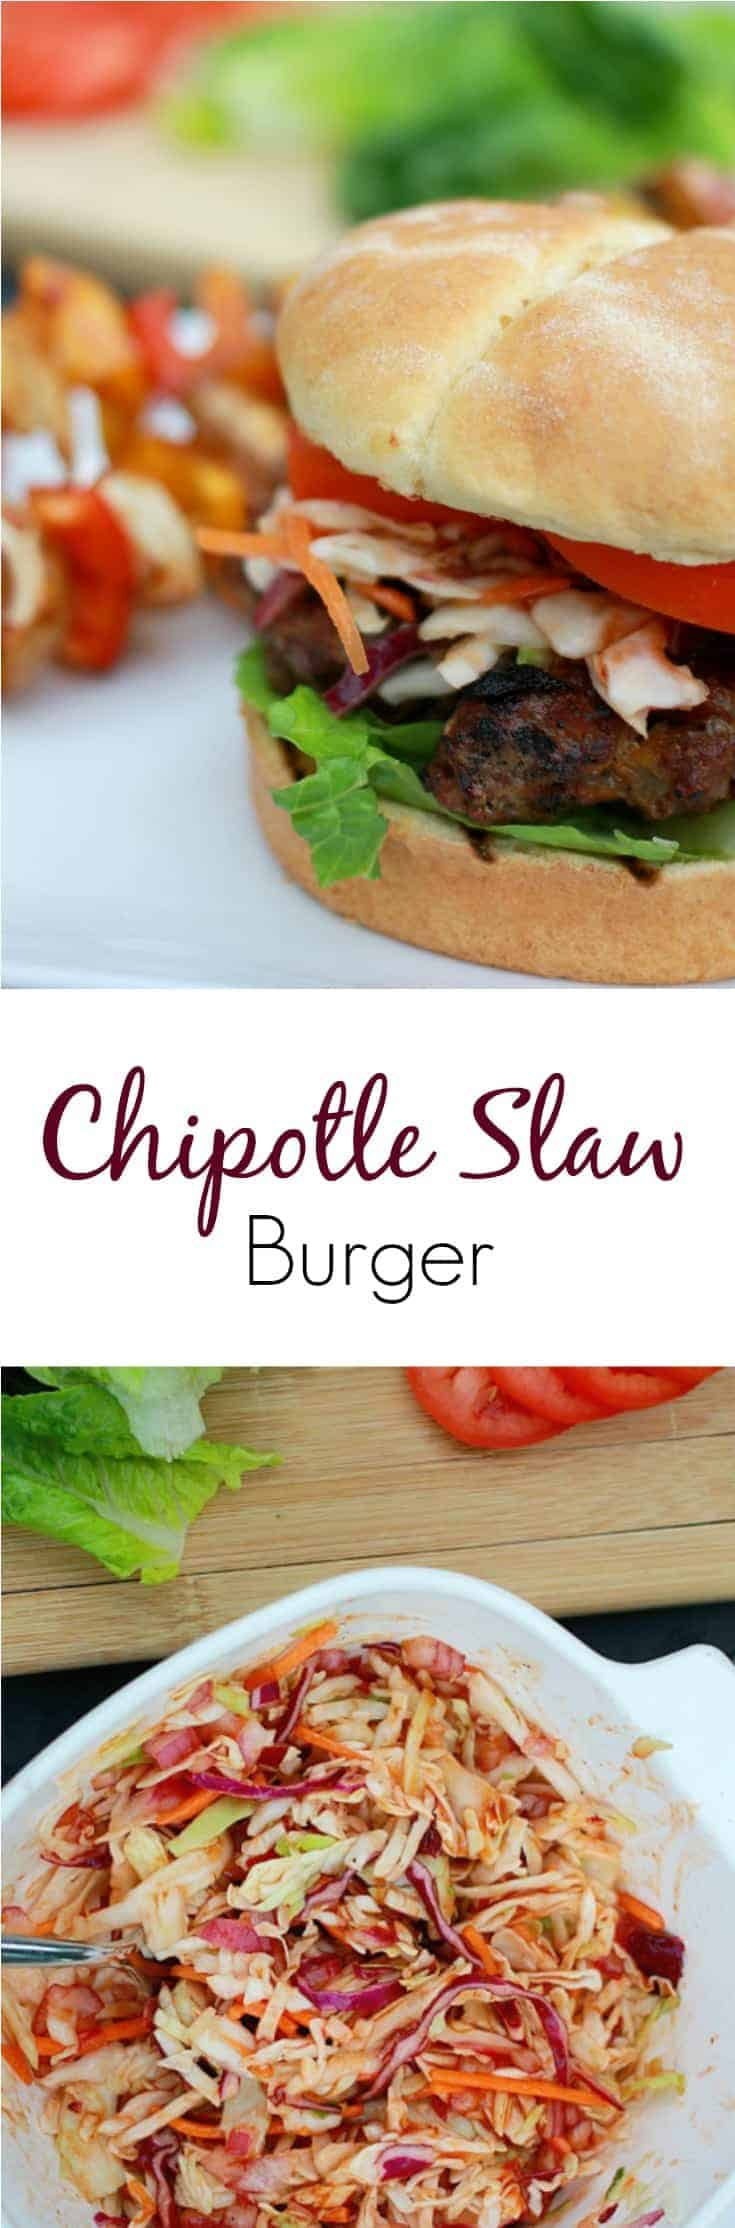 Making burgers better with this delicious recipe for a Chipotle Slaw Burger. You'll love the combined taste! #burger #burgerrecipe